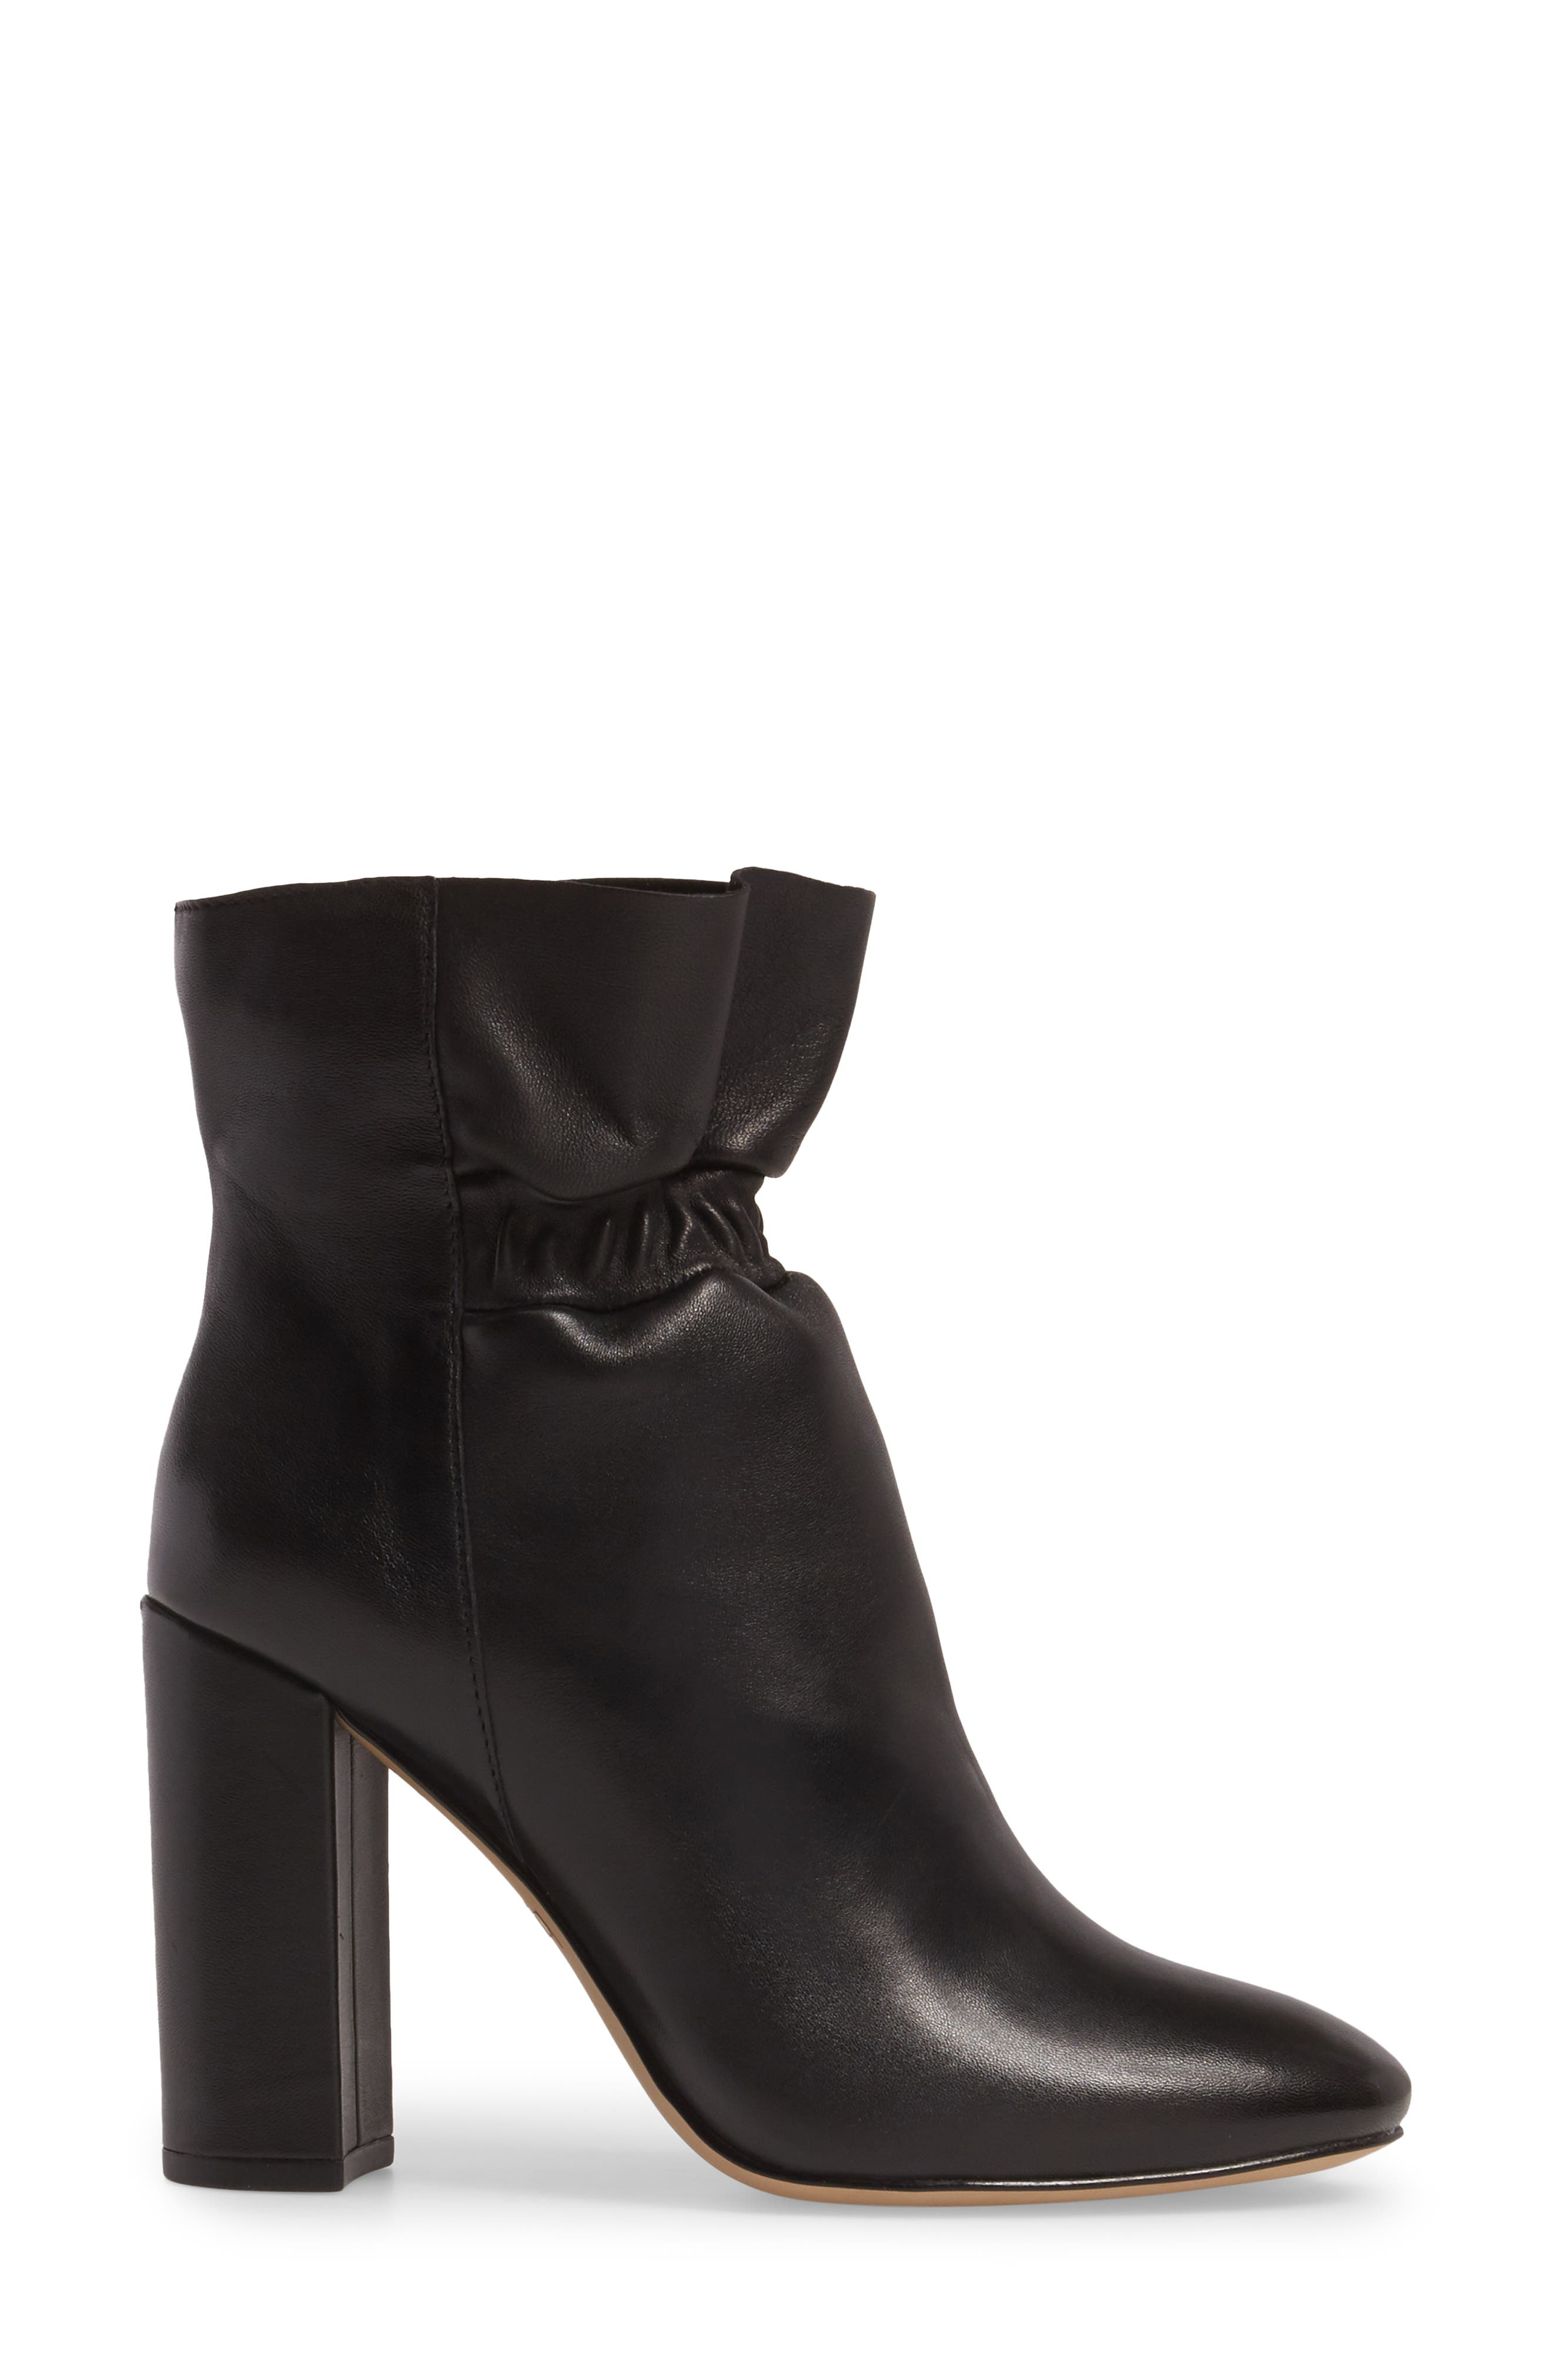 BOTKIER, Rylie Boot, Alternate thumbnail 3, color, 001